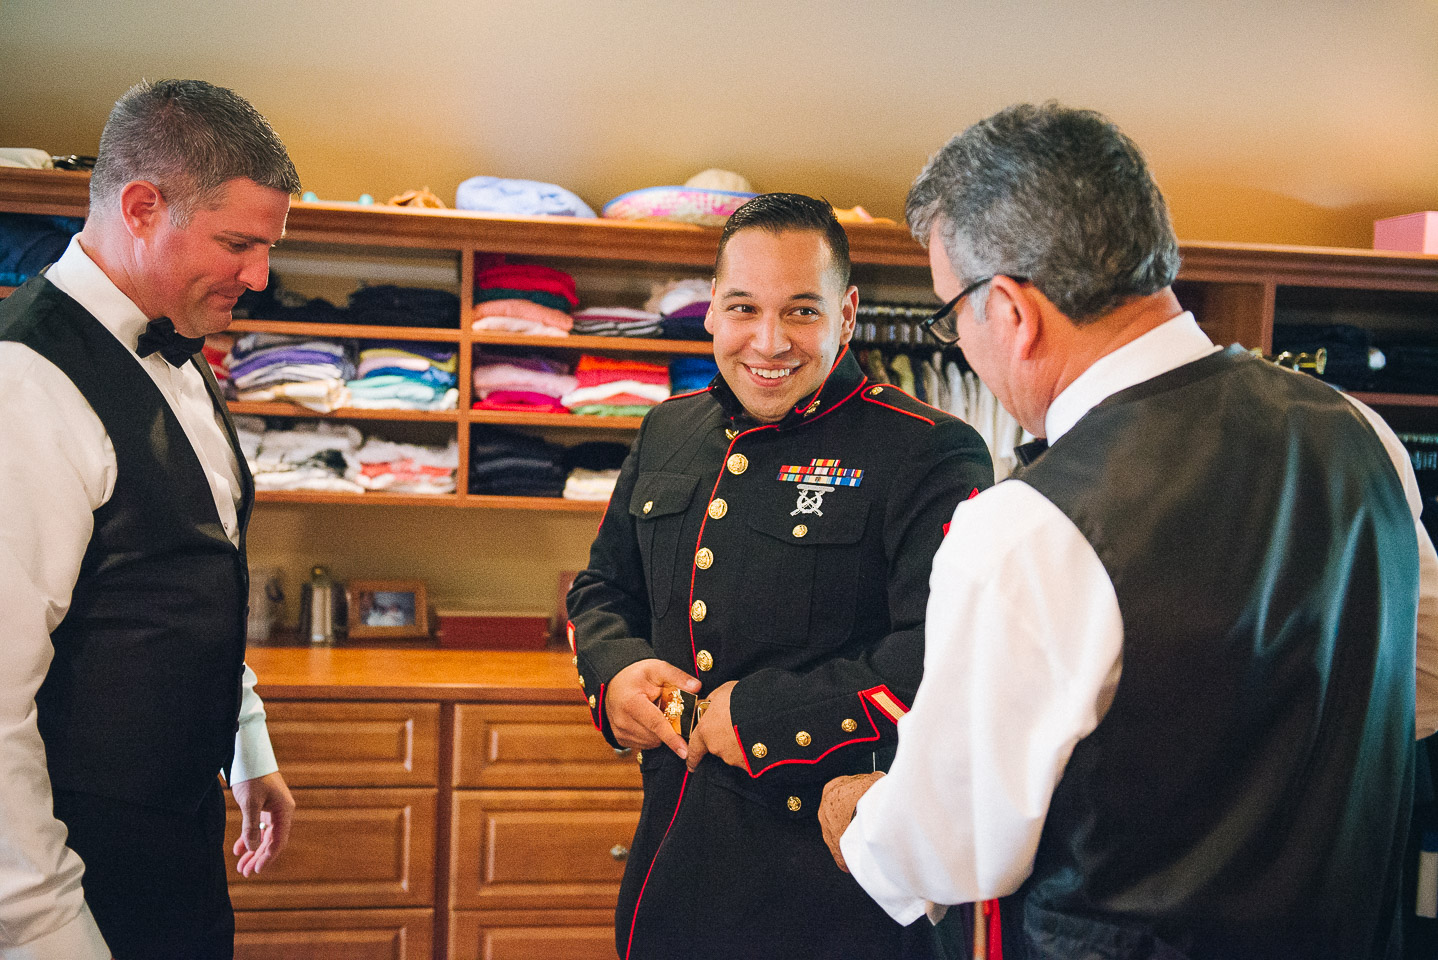 NH Wedding Photography: Groom putting on uniform